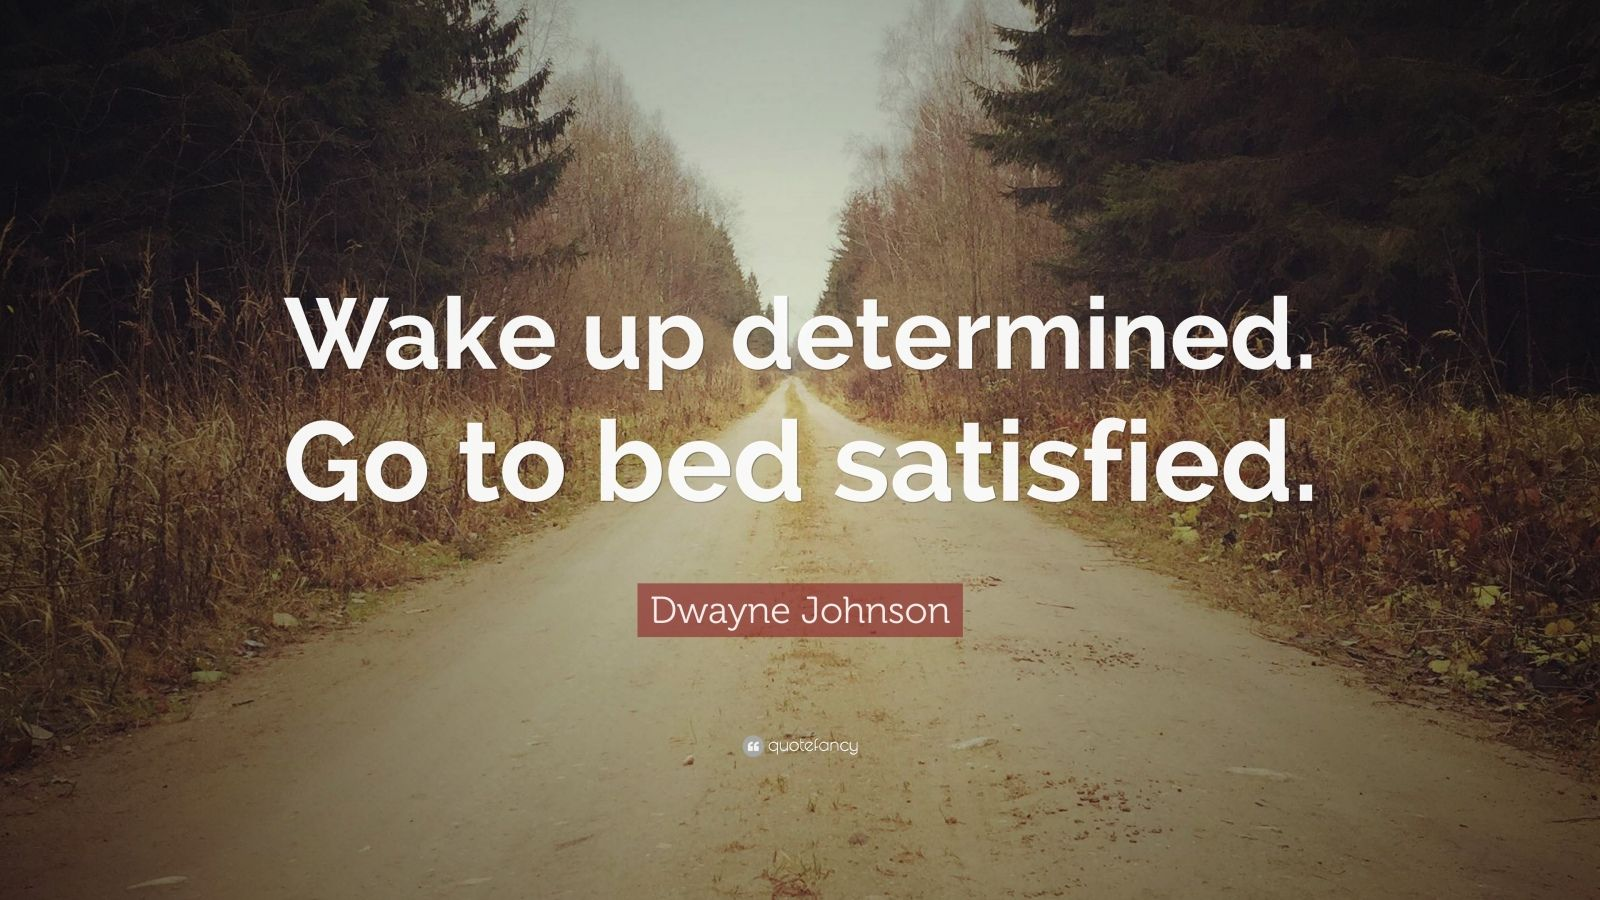 Work Hard Inspirational Quotes Wallpaper Dwayne Johnson Quote Wake Up Determined Go To Bed